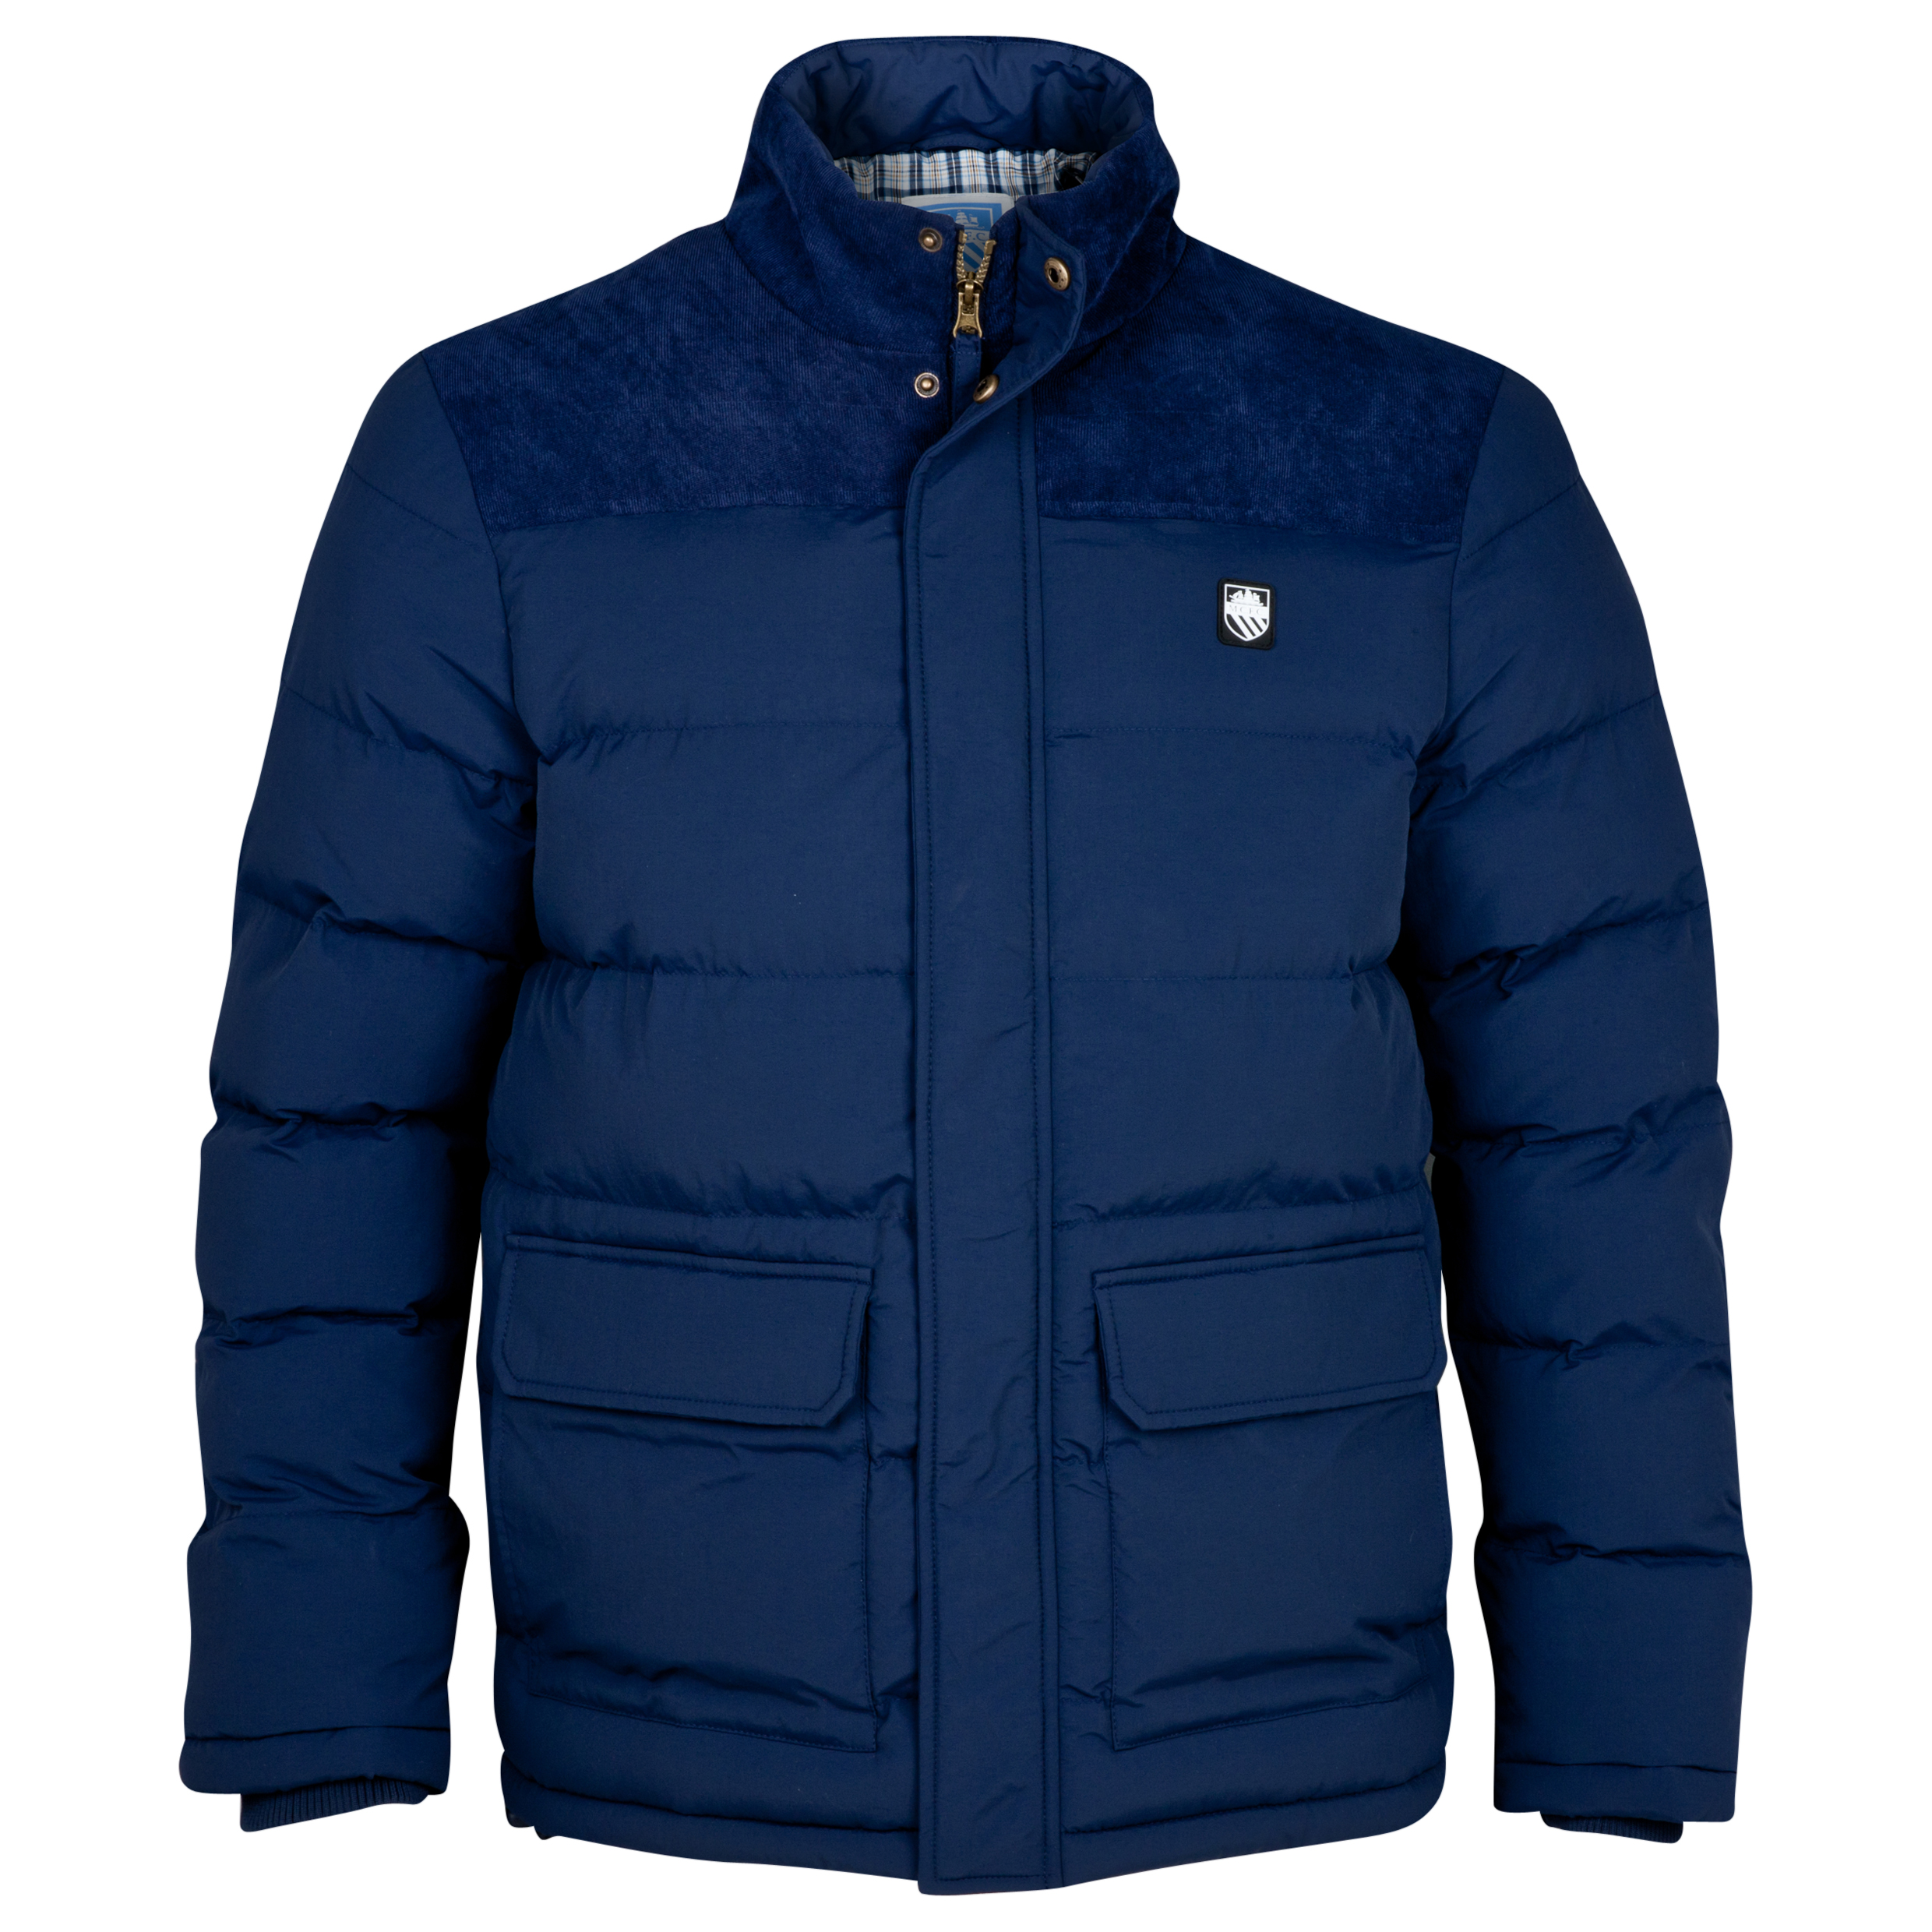 Manchester City Vancover Jacket - Mens Navy